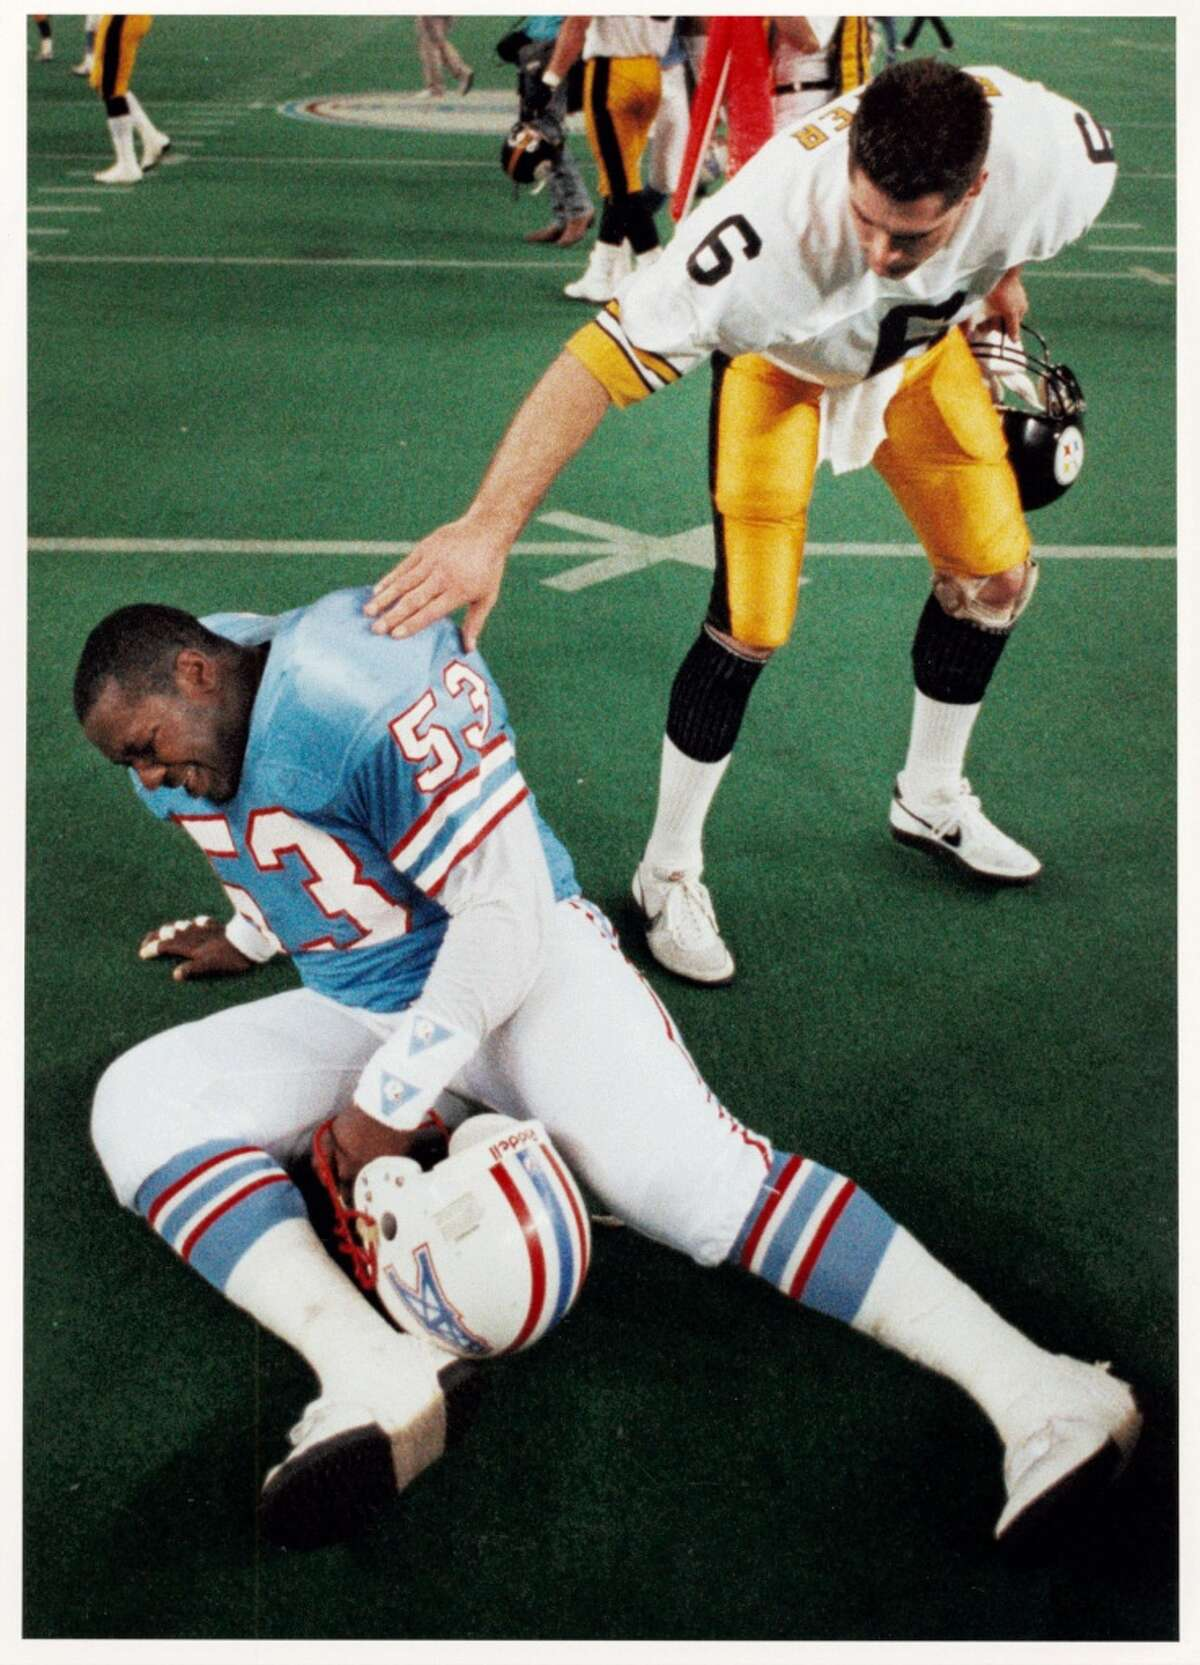 1989: Steelers 26, Oilers 23 (OT) The Jerry Glanville era ended in crushing fashion. The Oilers held a late lead, only to see the Steelers tie the score on Merrill Hoge's 2-yard touchdown run with 46 seconds left. Then, after a Lorenzo White fumble in overtime, Pittsburgh's Gary Anderson made a 50-yard field goal to oust the Oilers.